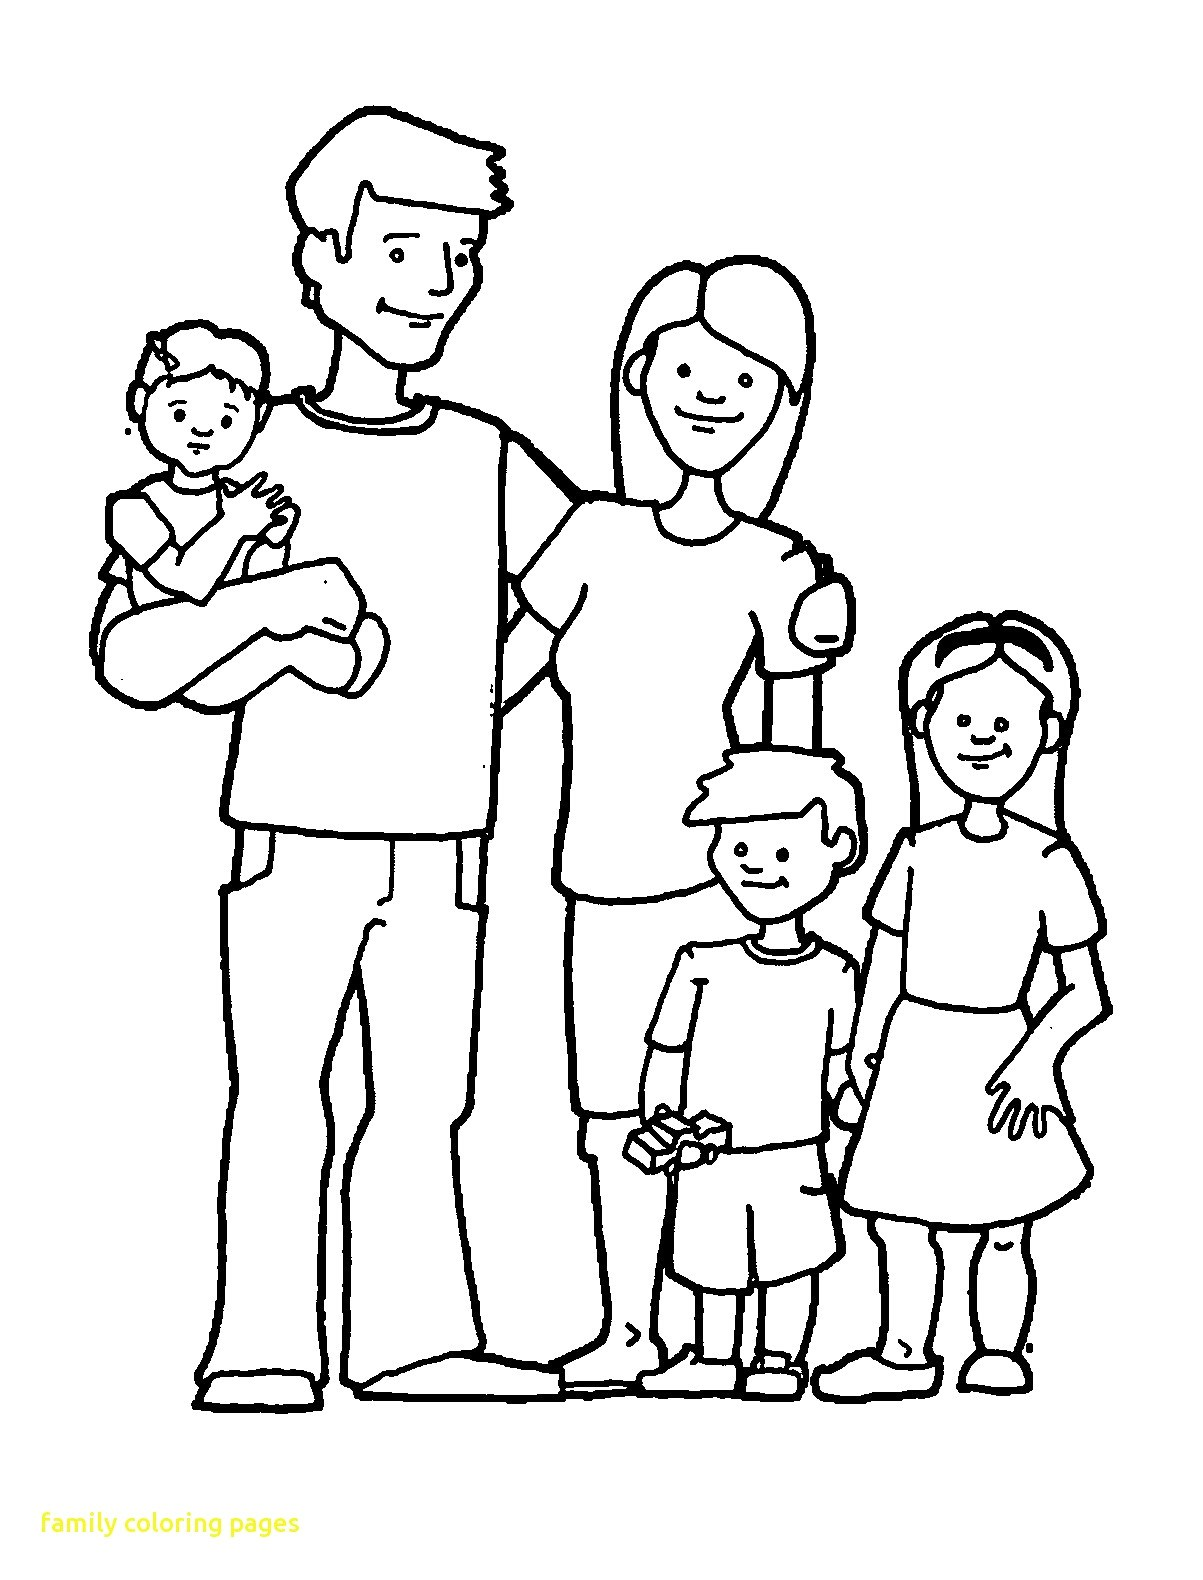 Family of 4 black and white clipart banner royalty free stock Joint family clipart black and white 4 » Clipart Portal banner royalty free stock